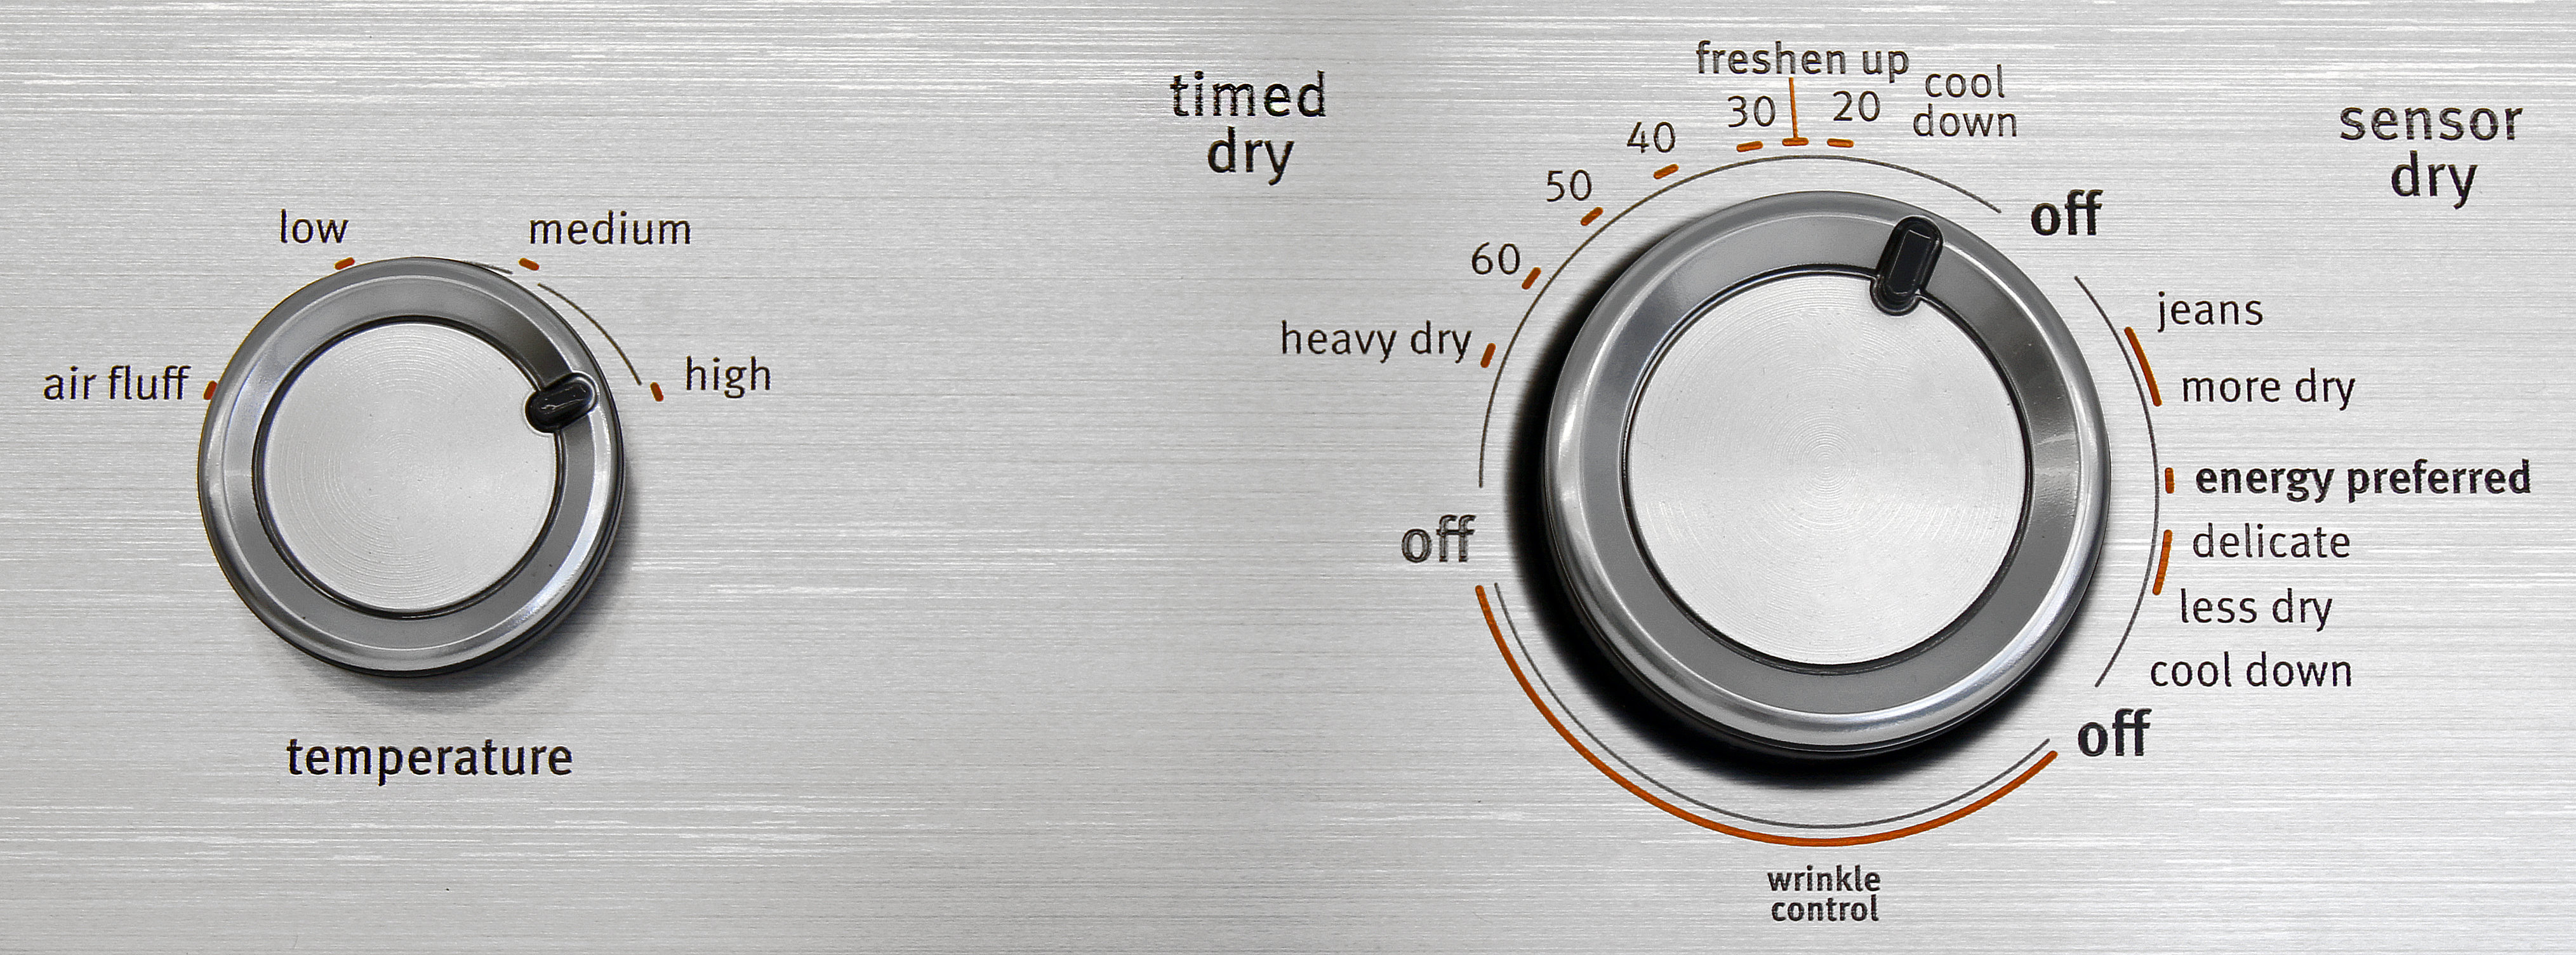 Despite the use of a crank timer, most of the Maytag Centennial MEDC555DW's cycles actually rely on sensors.